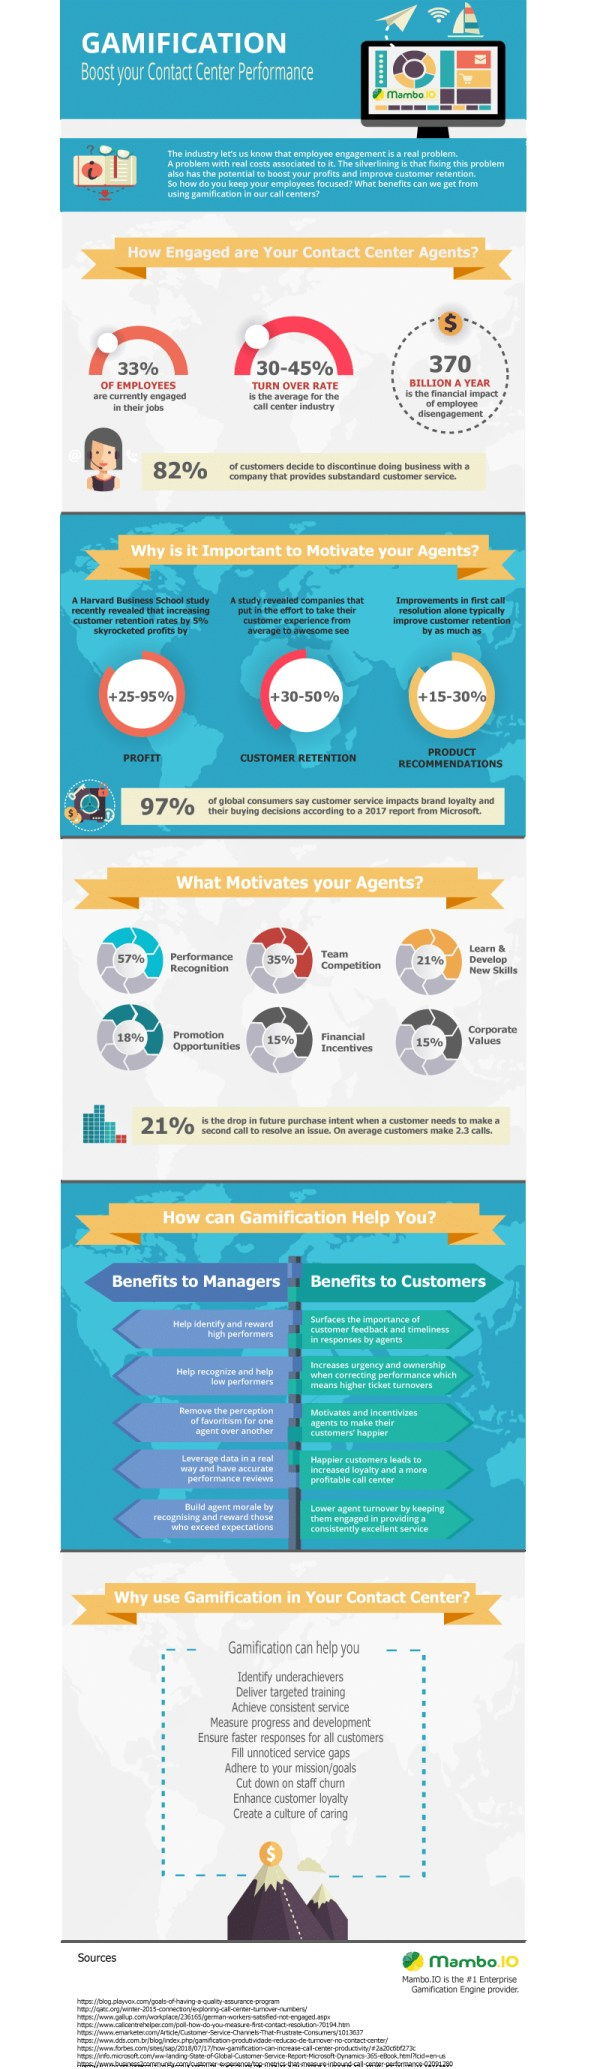 infographic_contact_center_gamification